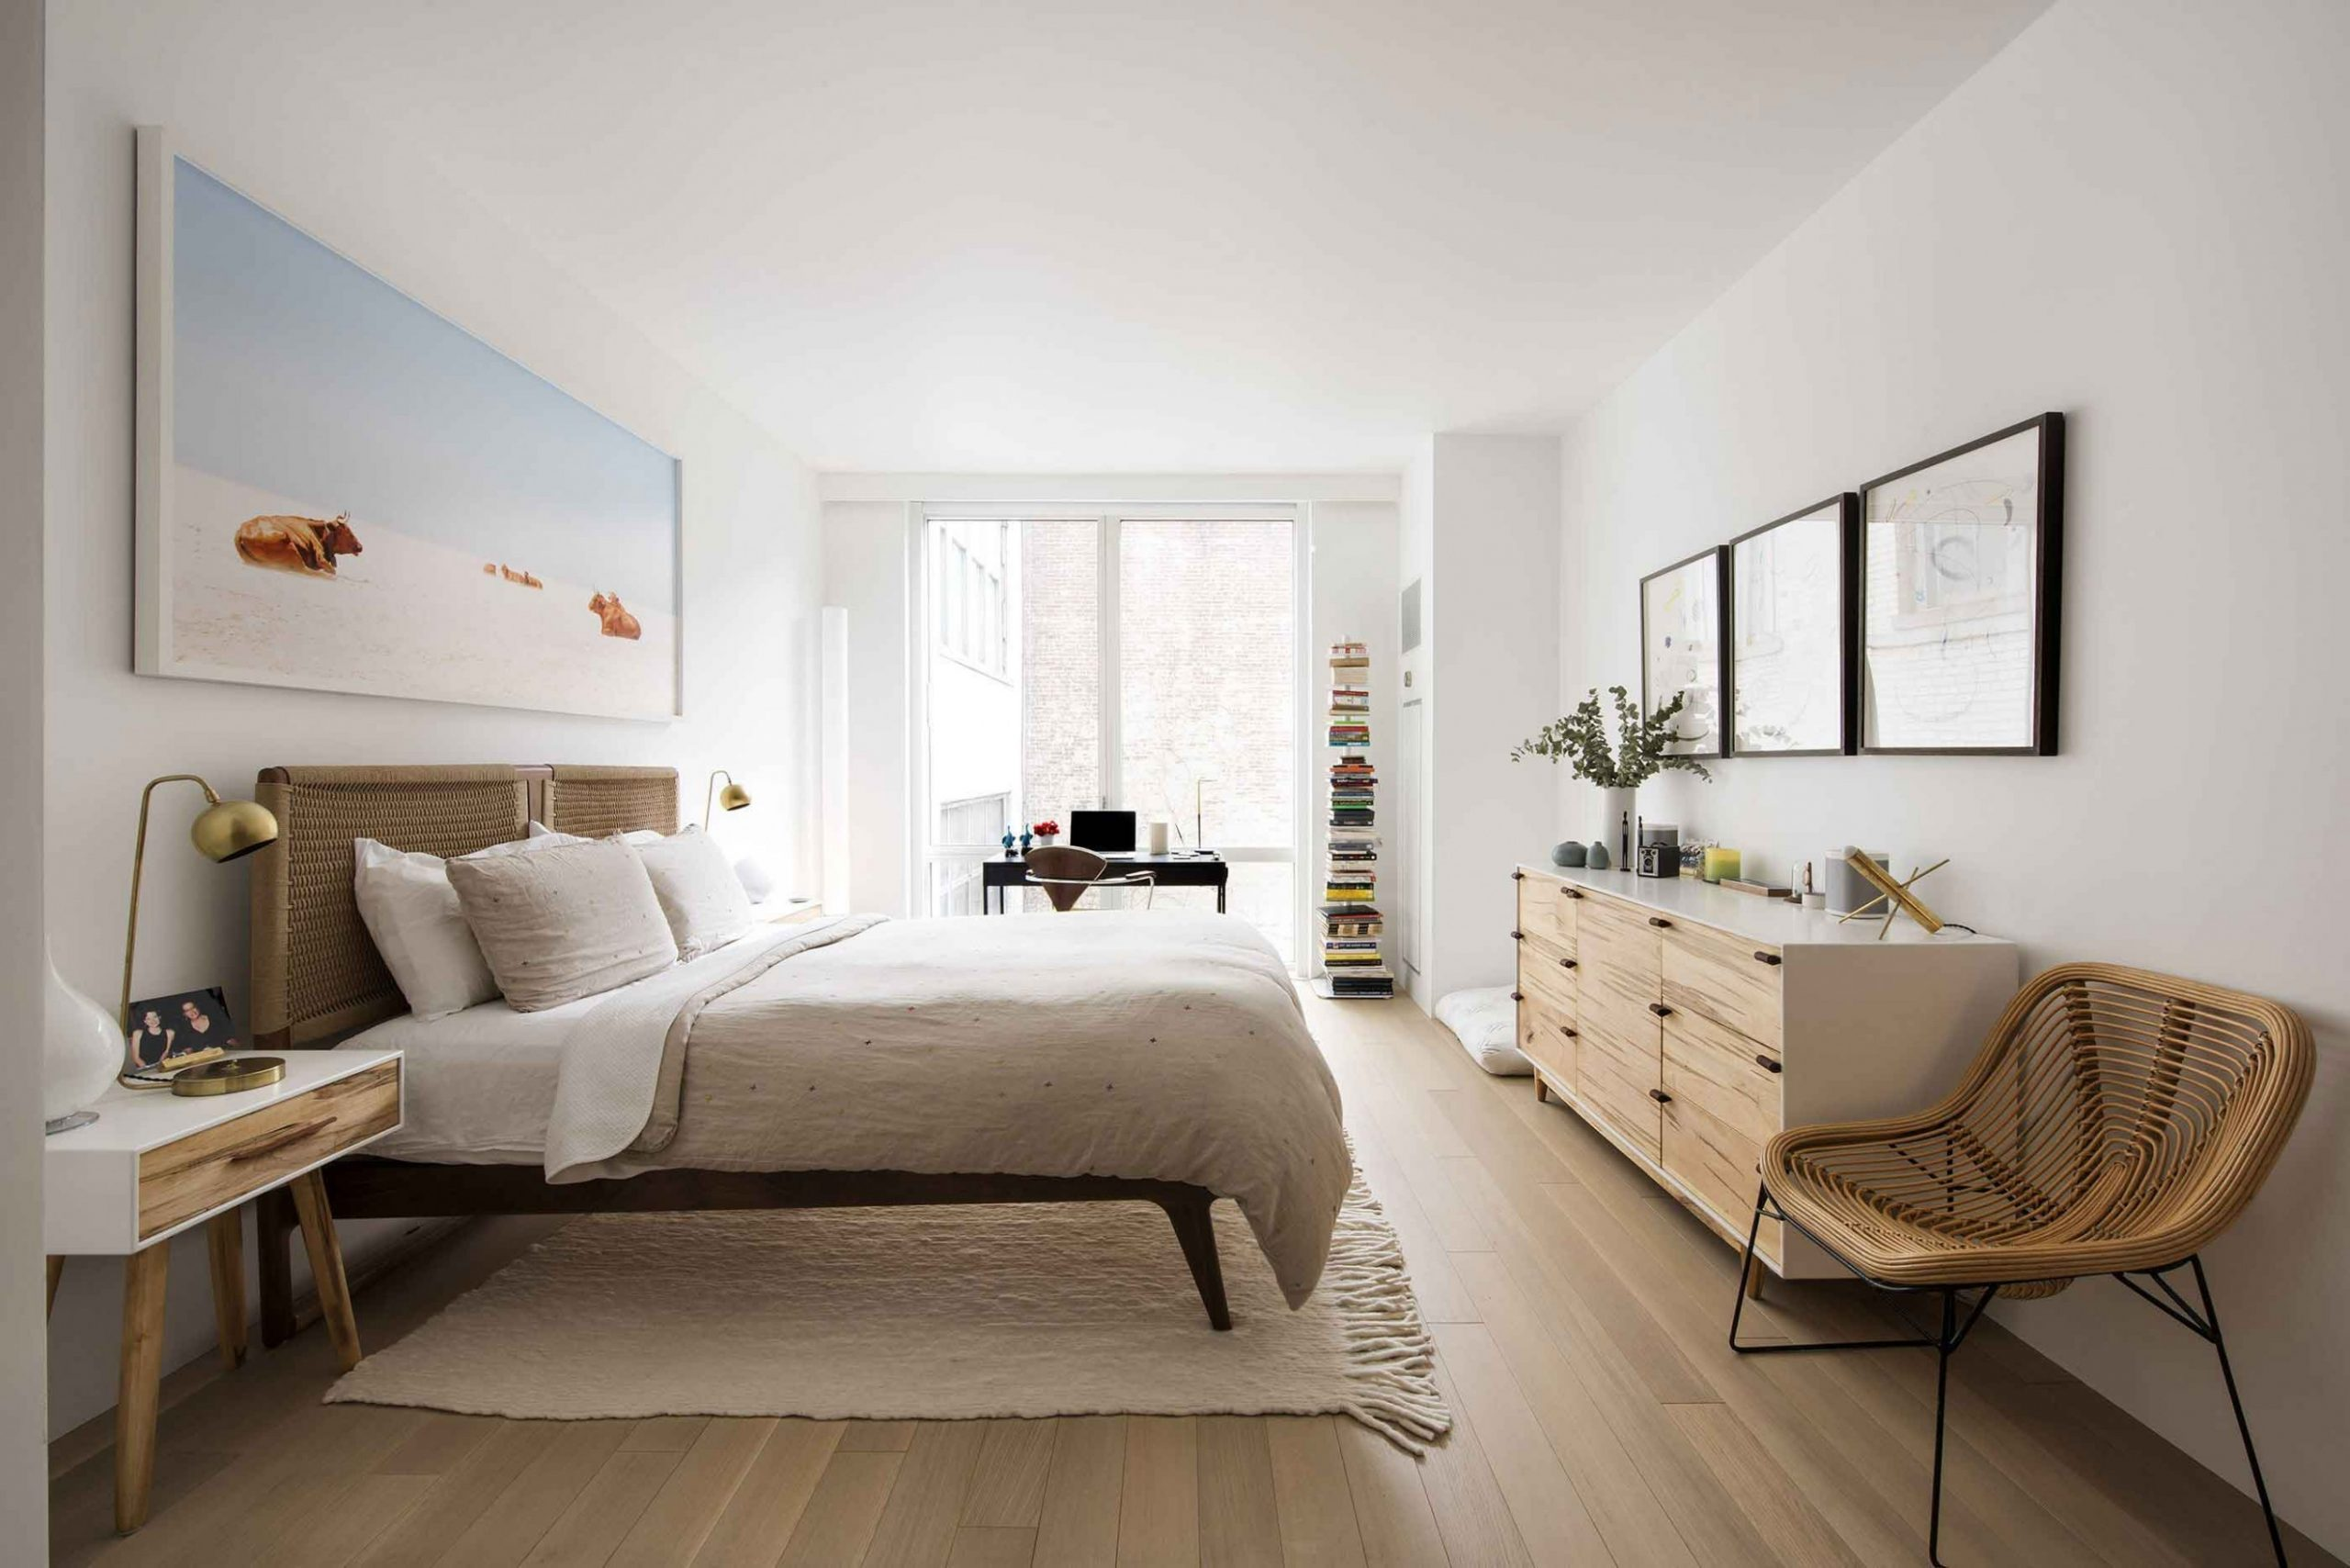 Urban Modern Bedroom Ideas for Your Home - Bedroom Ideas Images